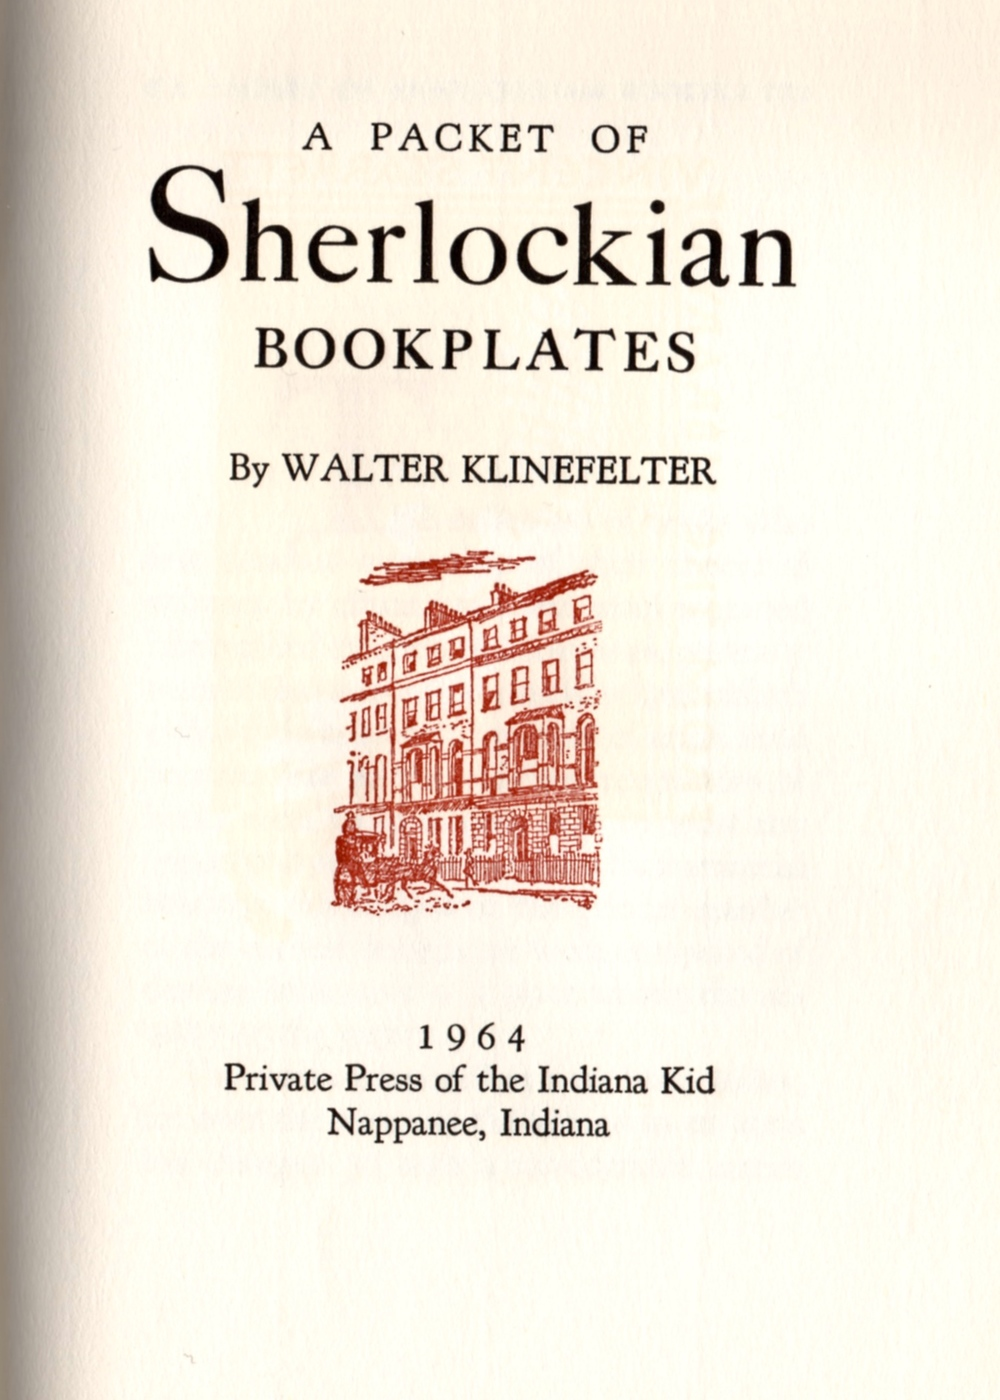 SherlockianBookplatesTitle - Version 2.jpeg